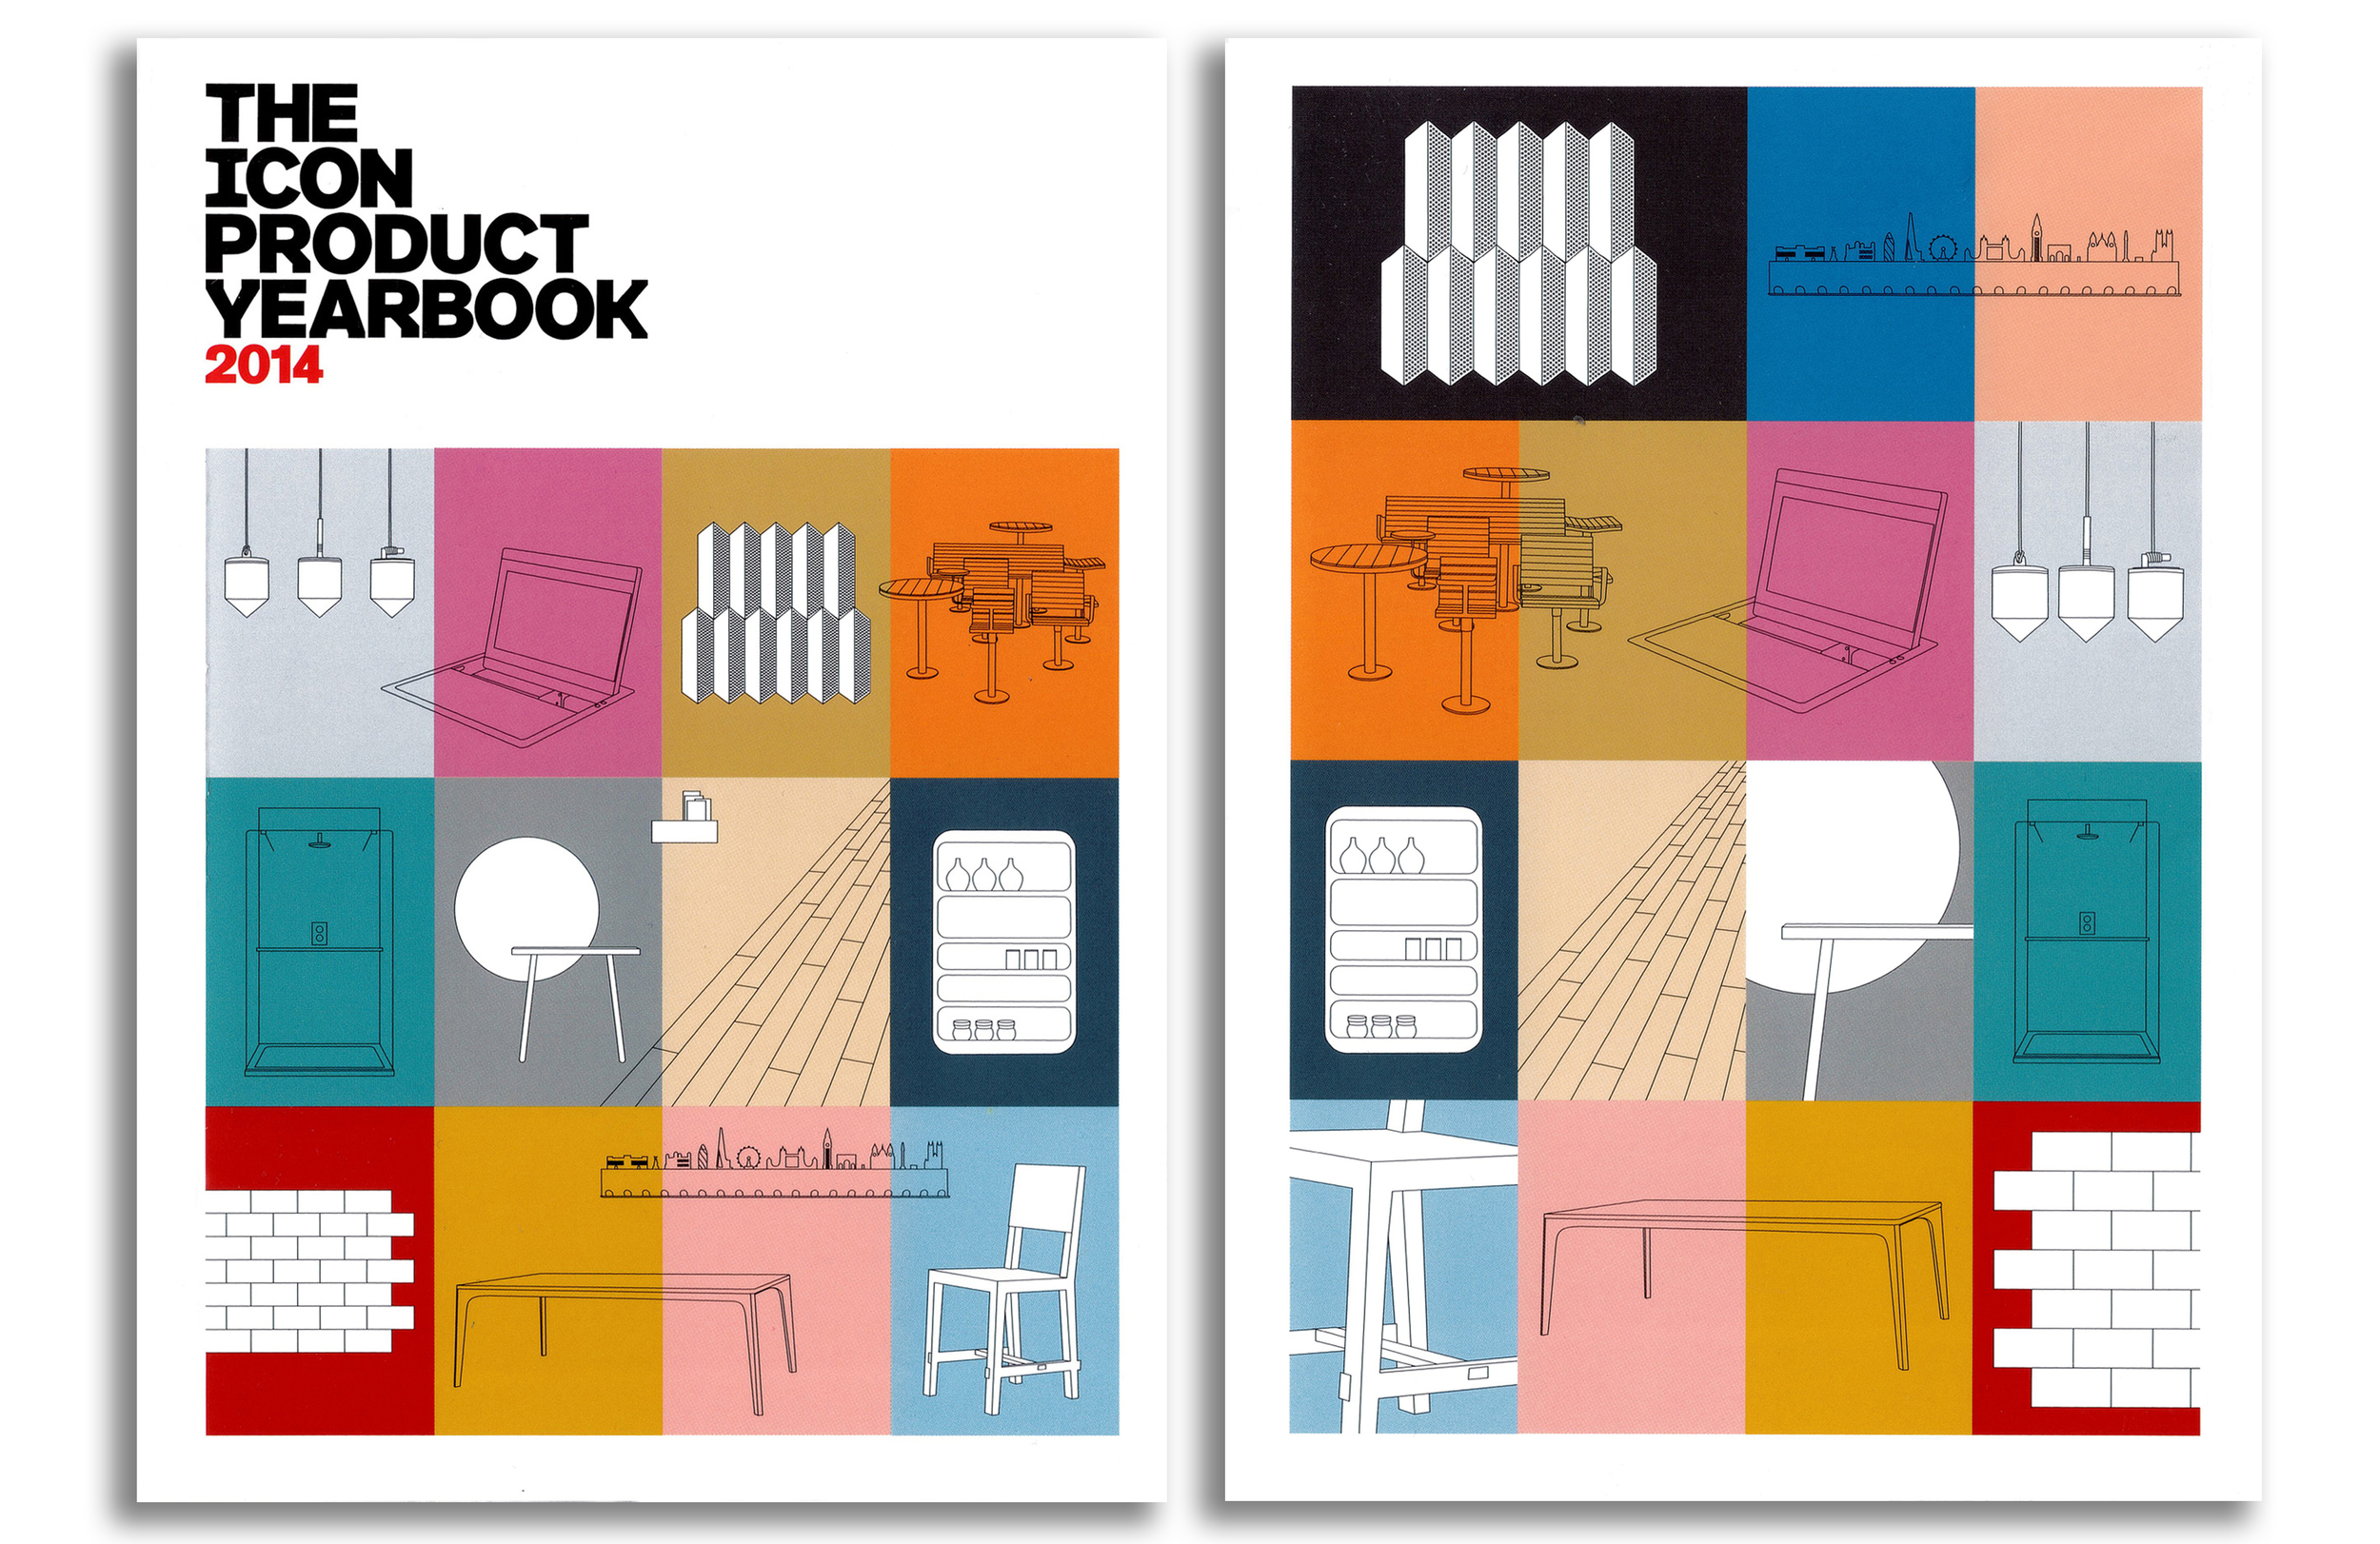 Icon-Product-Yearbook-2014-Christian-Lo-Design